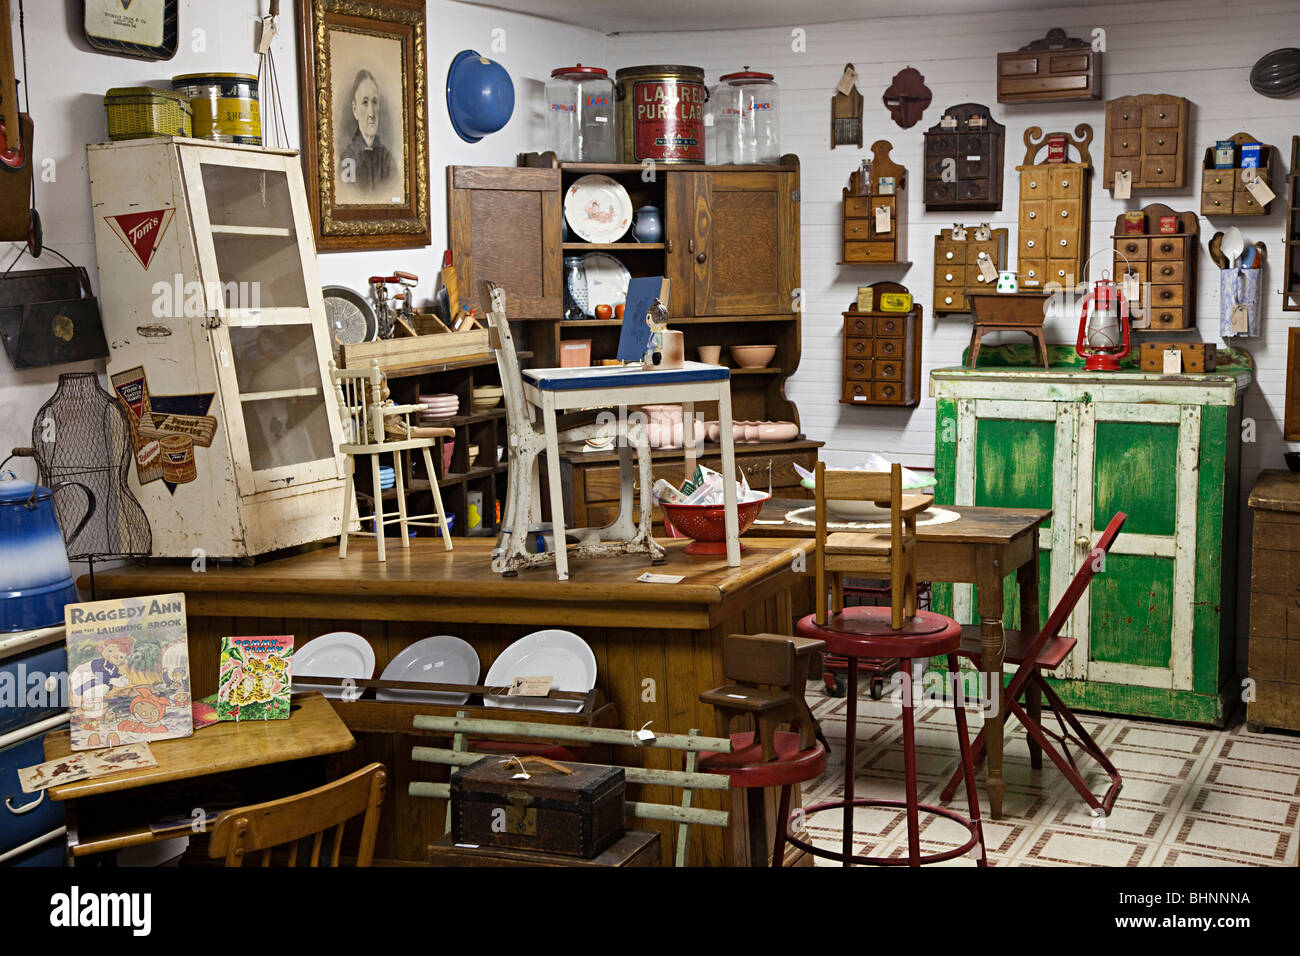 Flea market shop with furniture and goods for sale Texas USA. Flea market shop with furniture and goods for sale Texas USA Stock